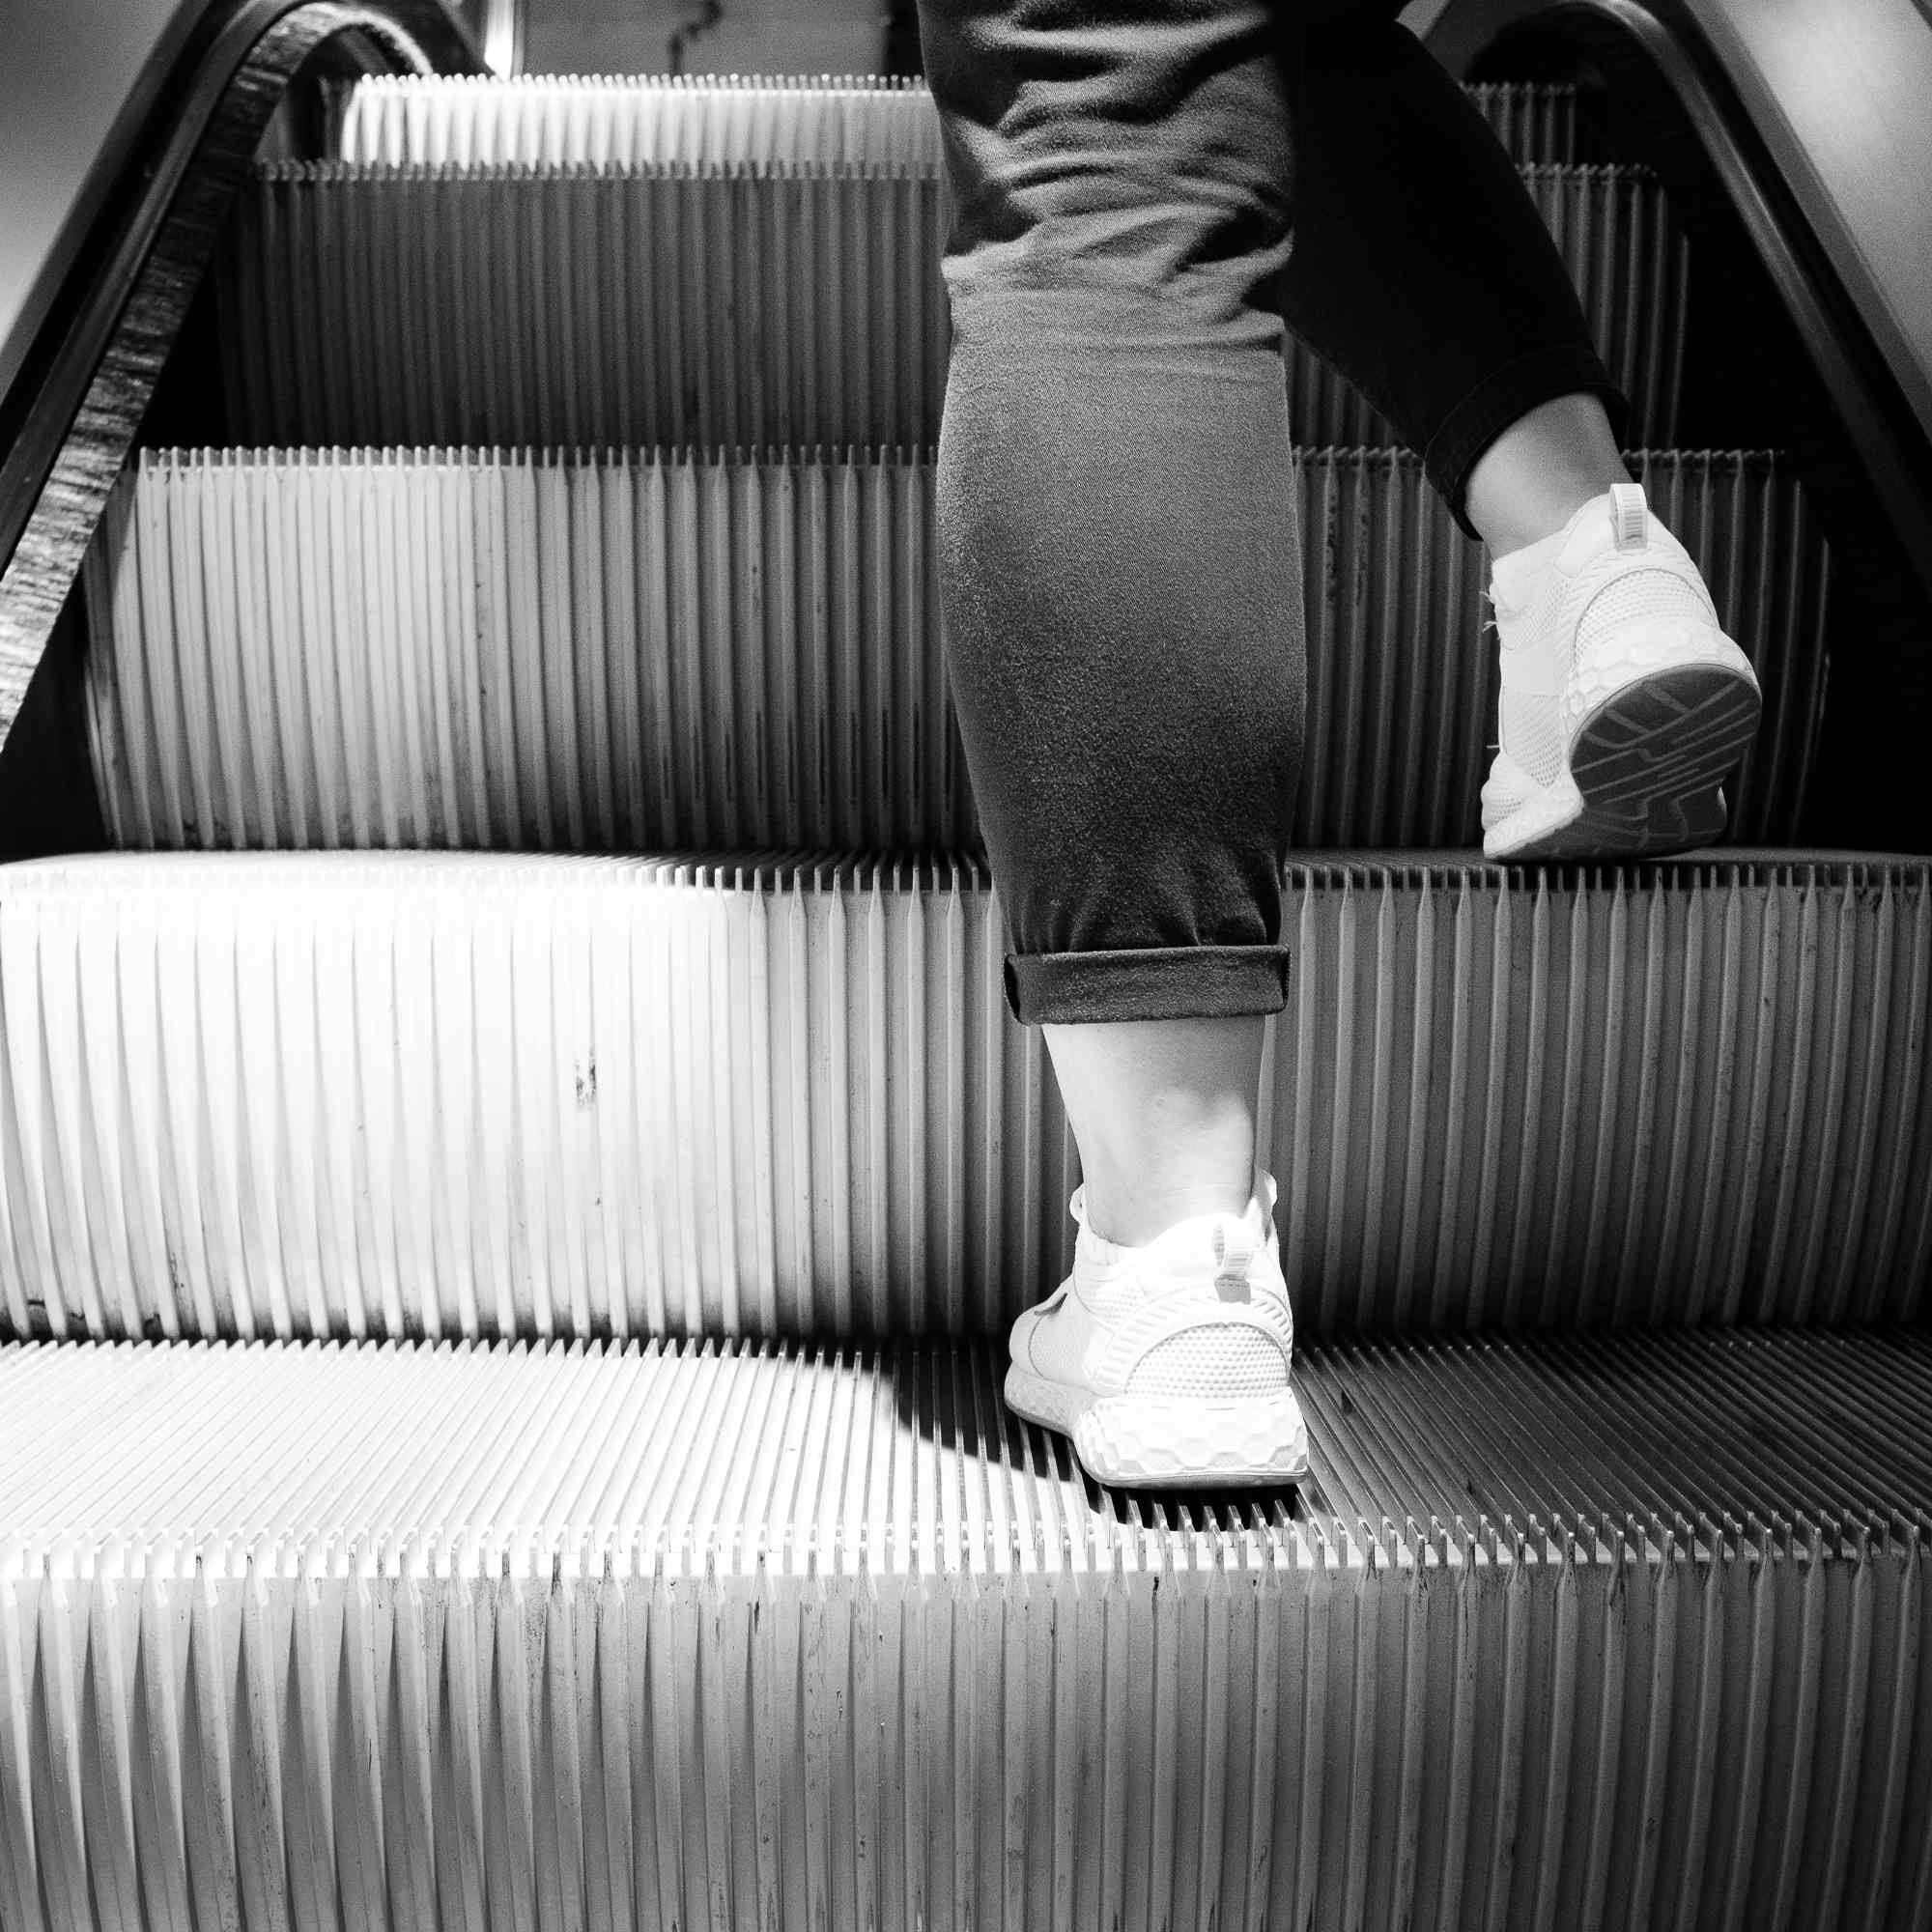 An escalator with someone's legs